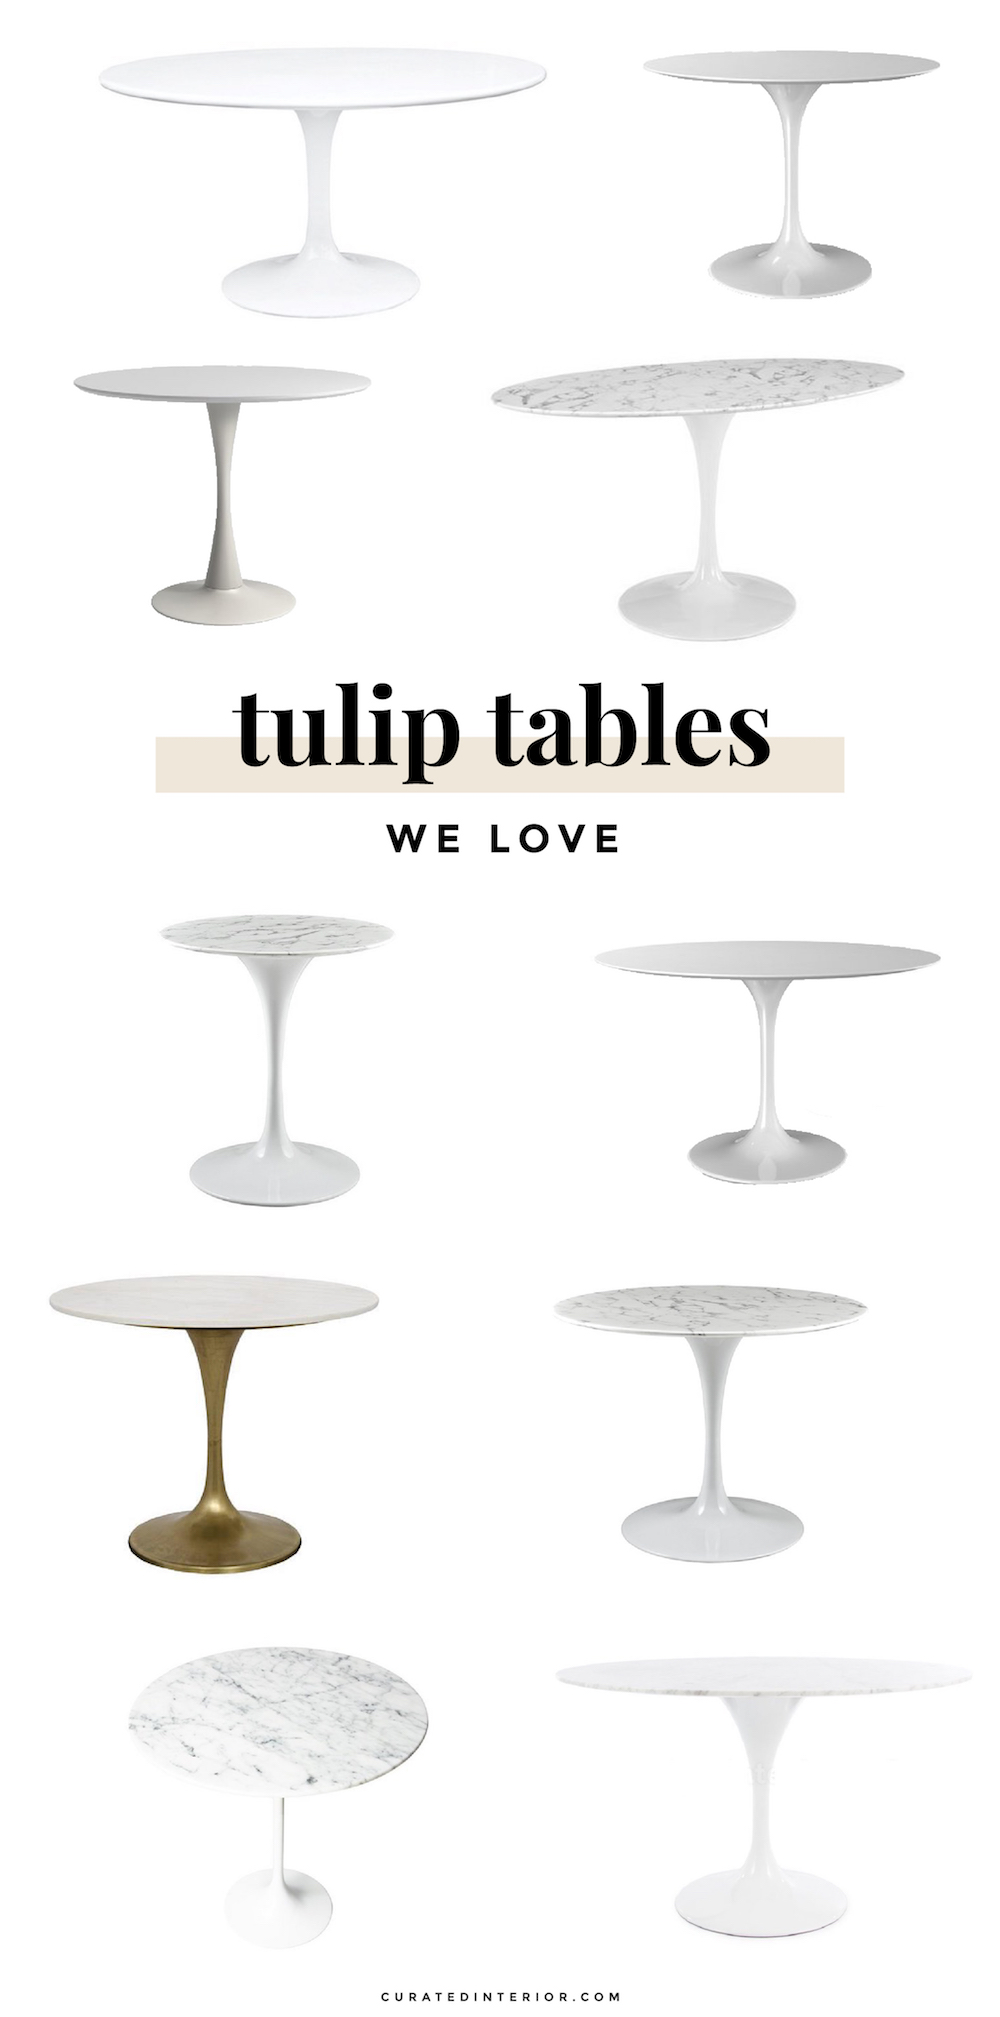 Tulip Tables